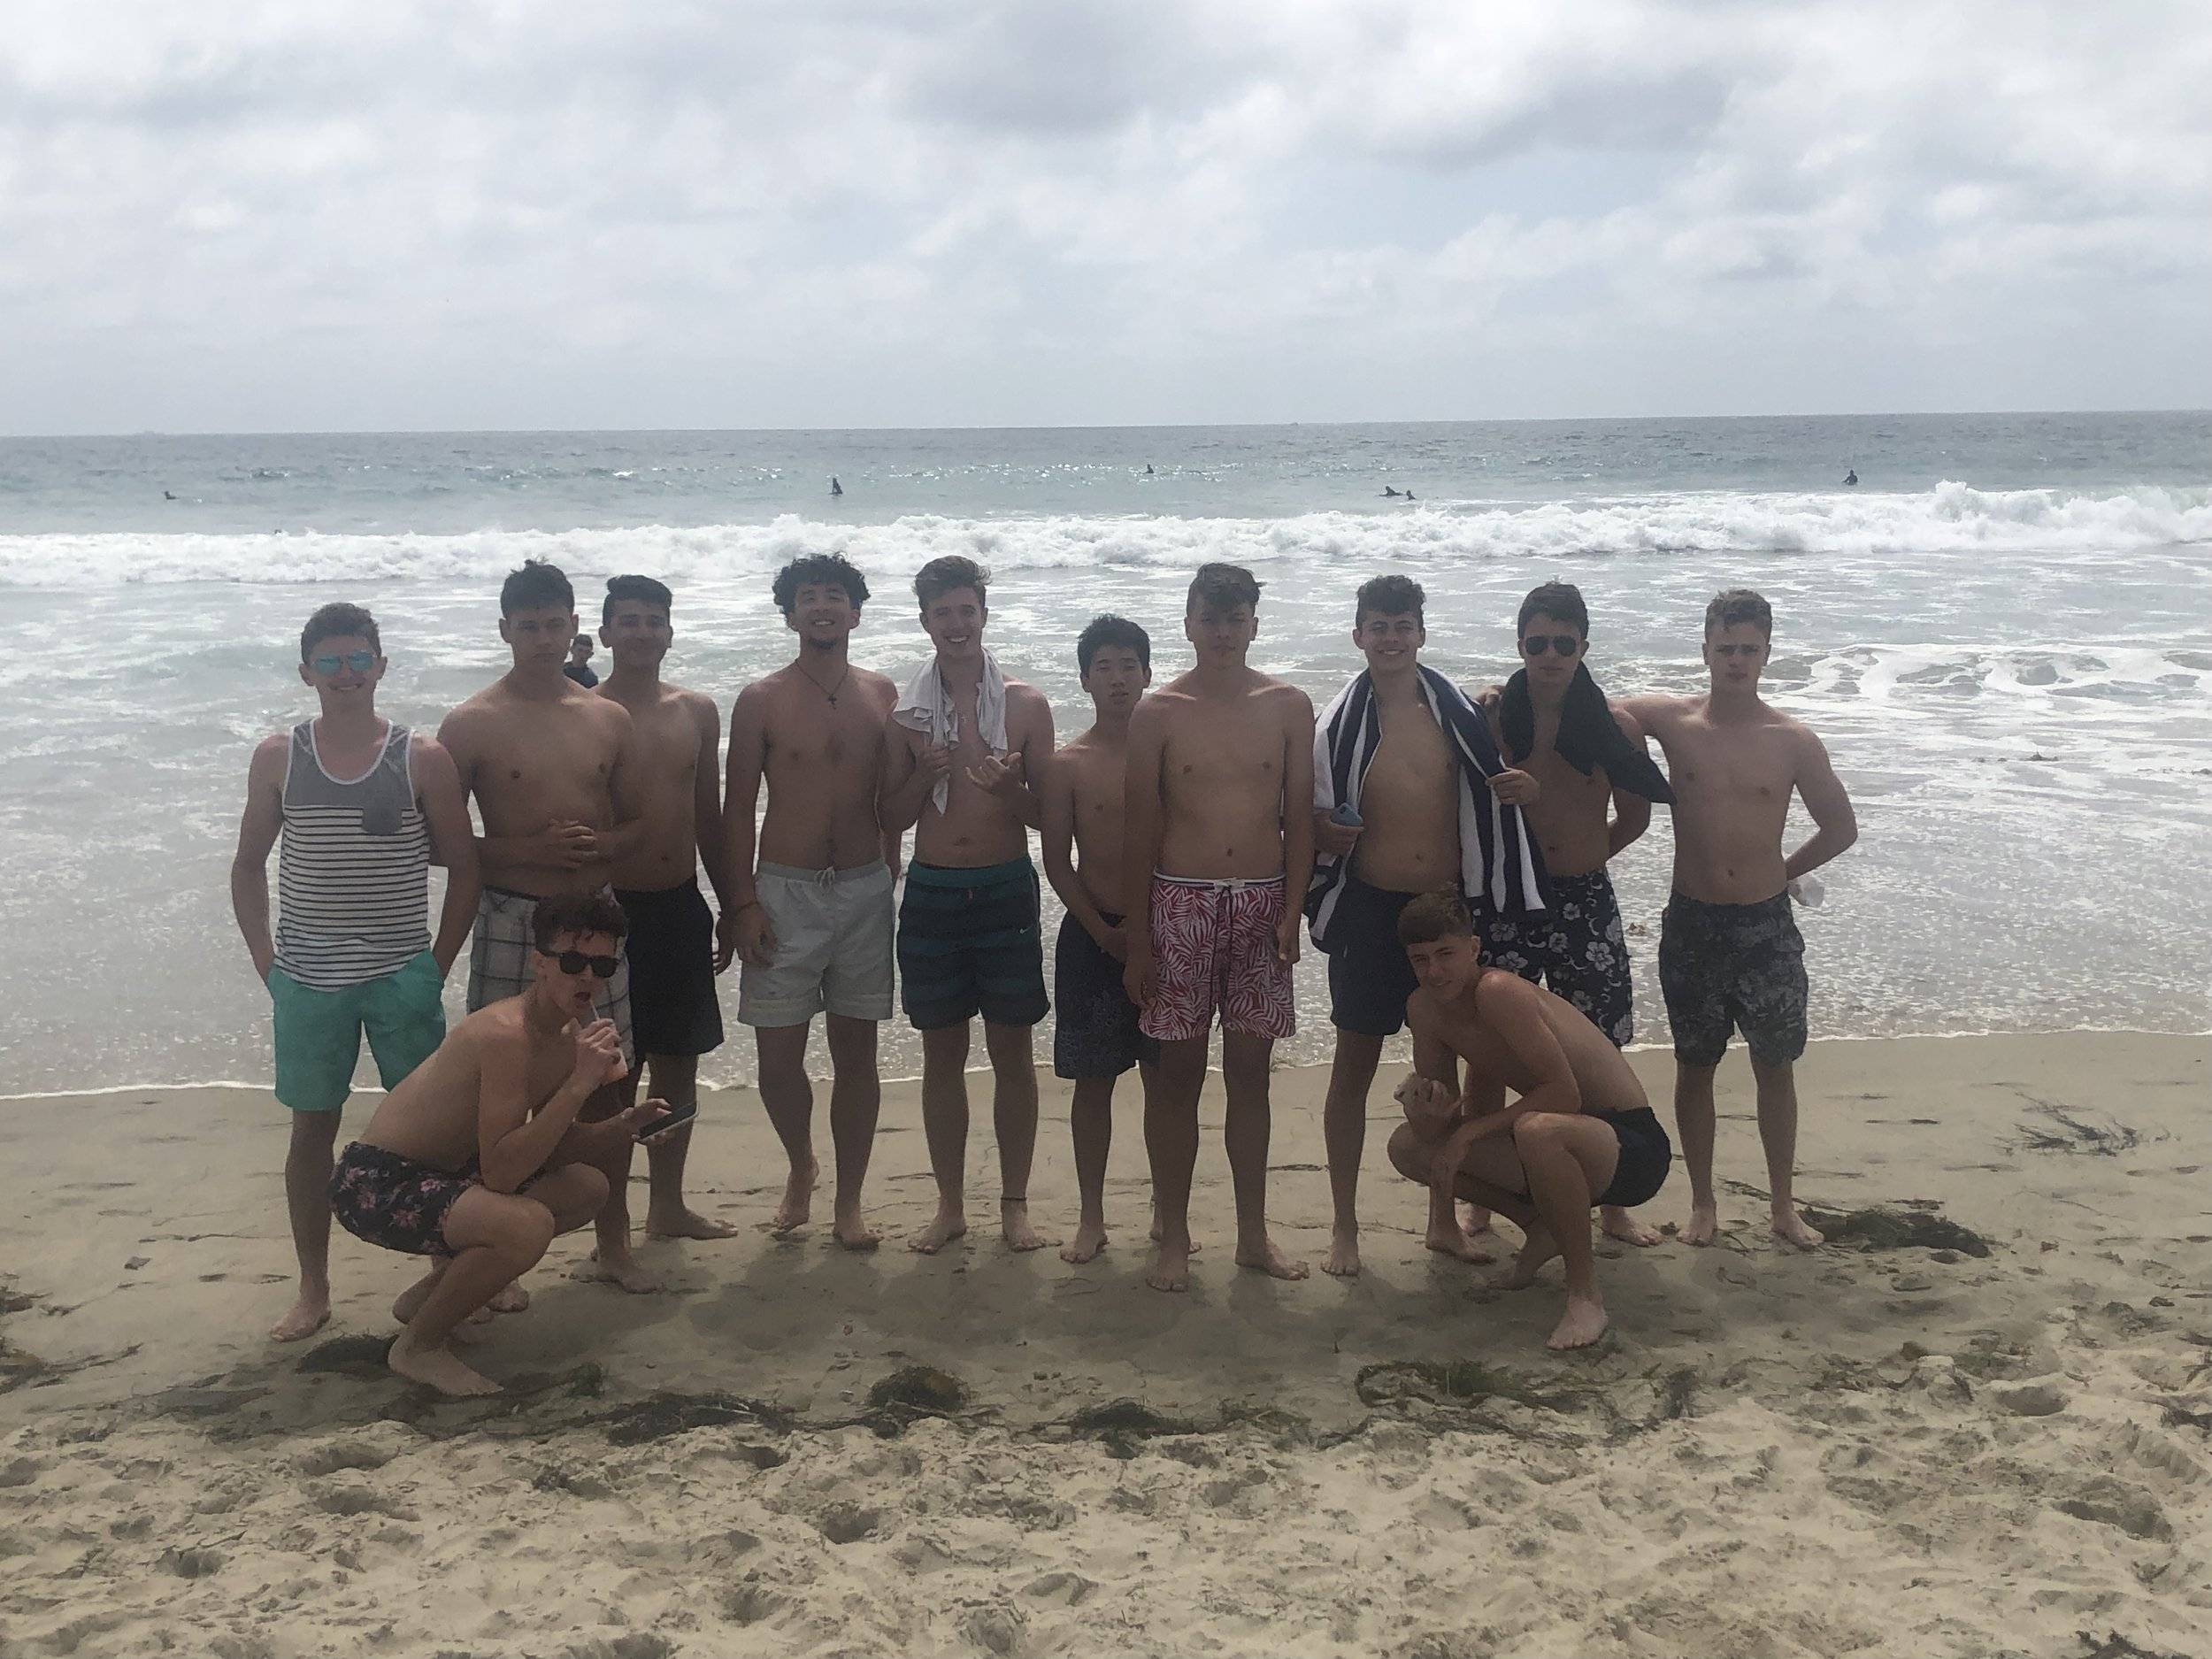 MON: Beach day! Lots of boogie boarding, beach football, and a few sunburns